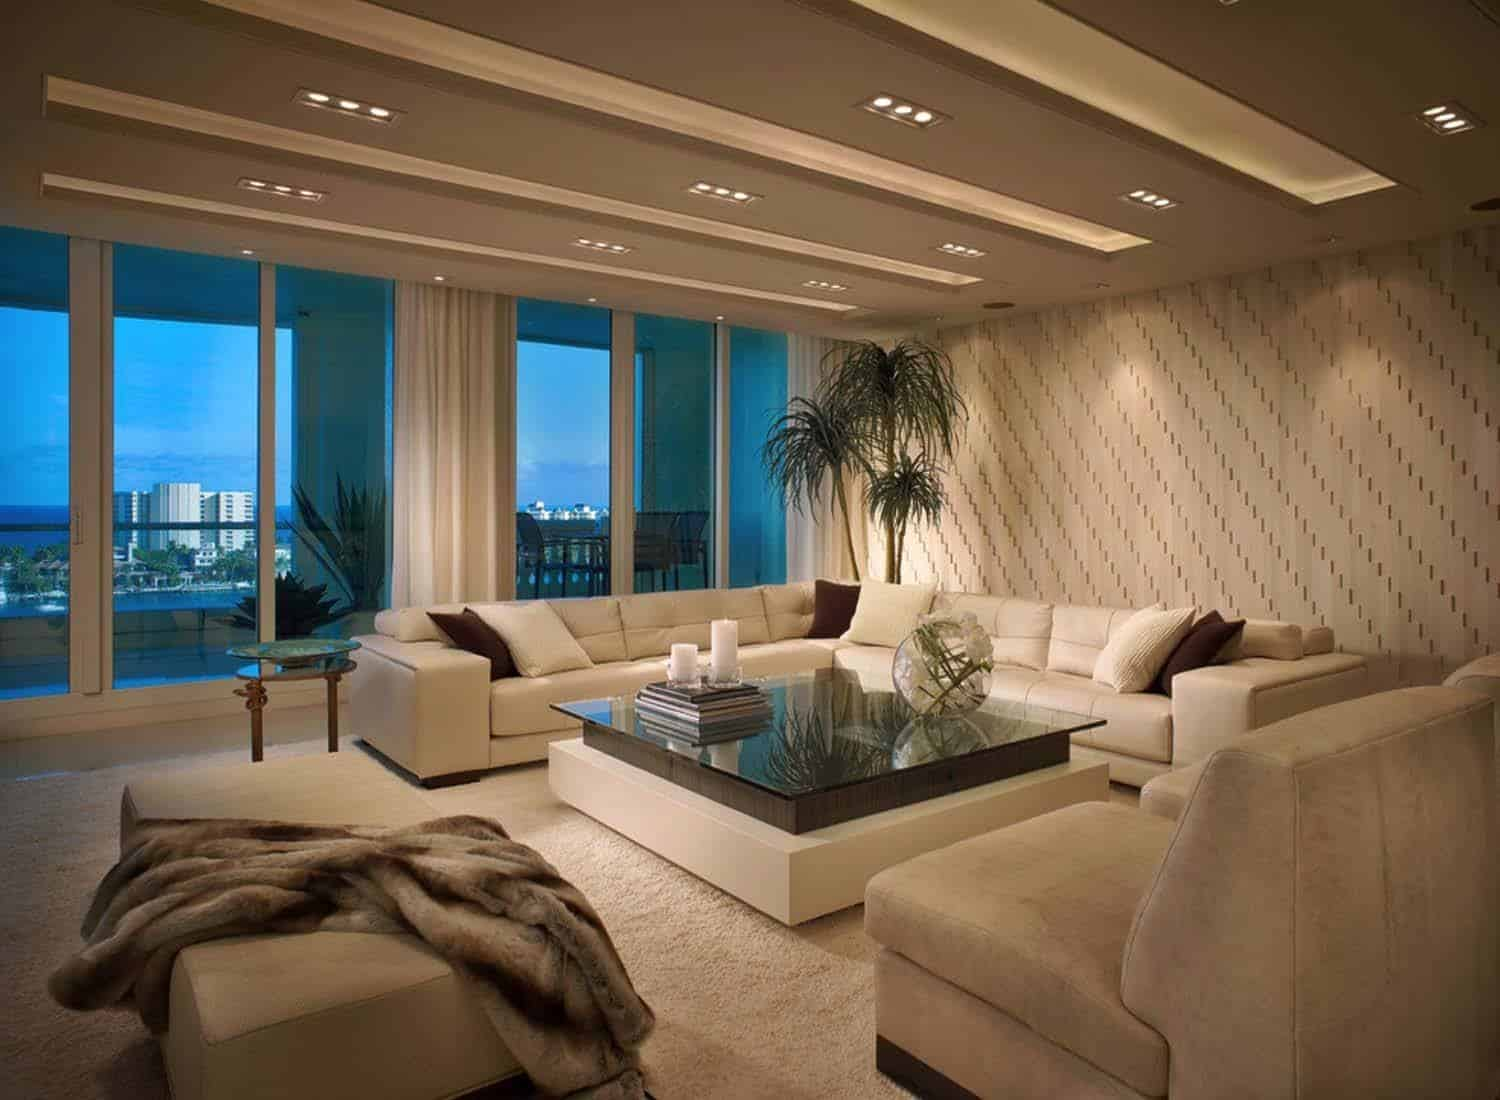 Impeccable design details in luxurious boca raton residence for Living room theater boca raton